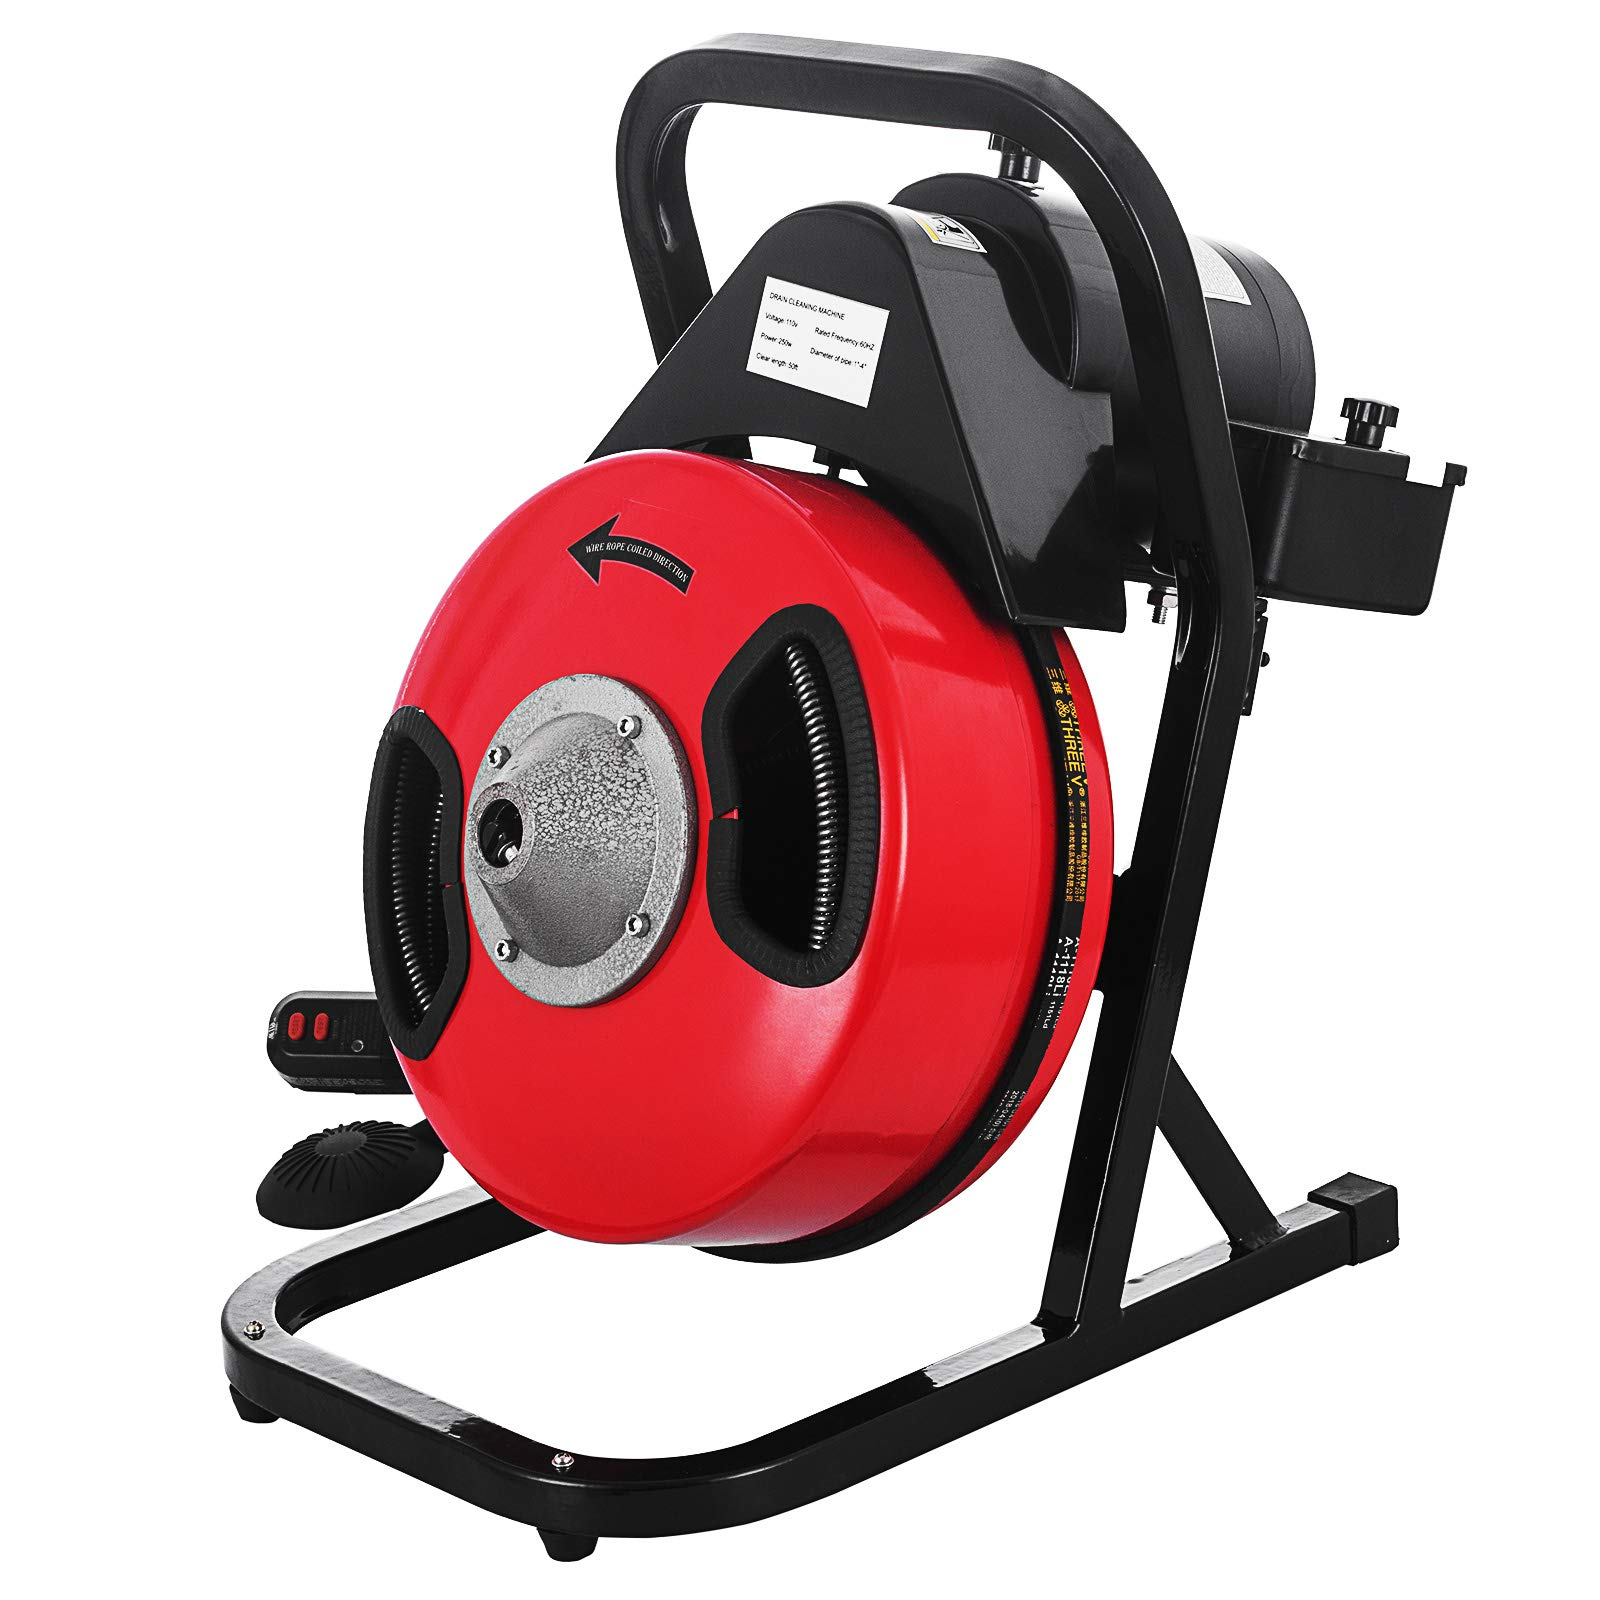 SHZOND Drain Cleaning Machine 1/2 Inch x 50 Ft Drain Cleaner Machine with 4 Cutter and Foot Switch Electric Drain Pipe Cleaner for 1 to 4 Inch Pipes (50 FT) by SHZOND (Image #2)